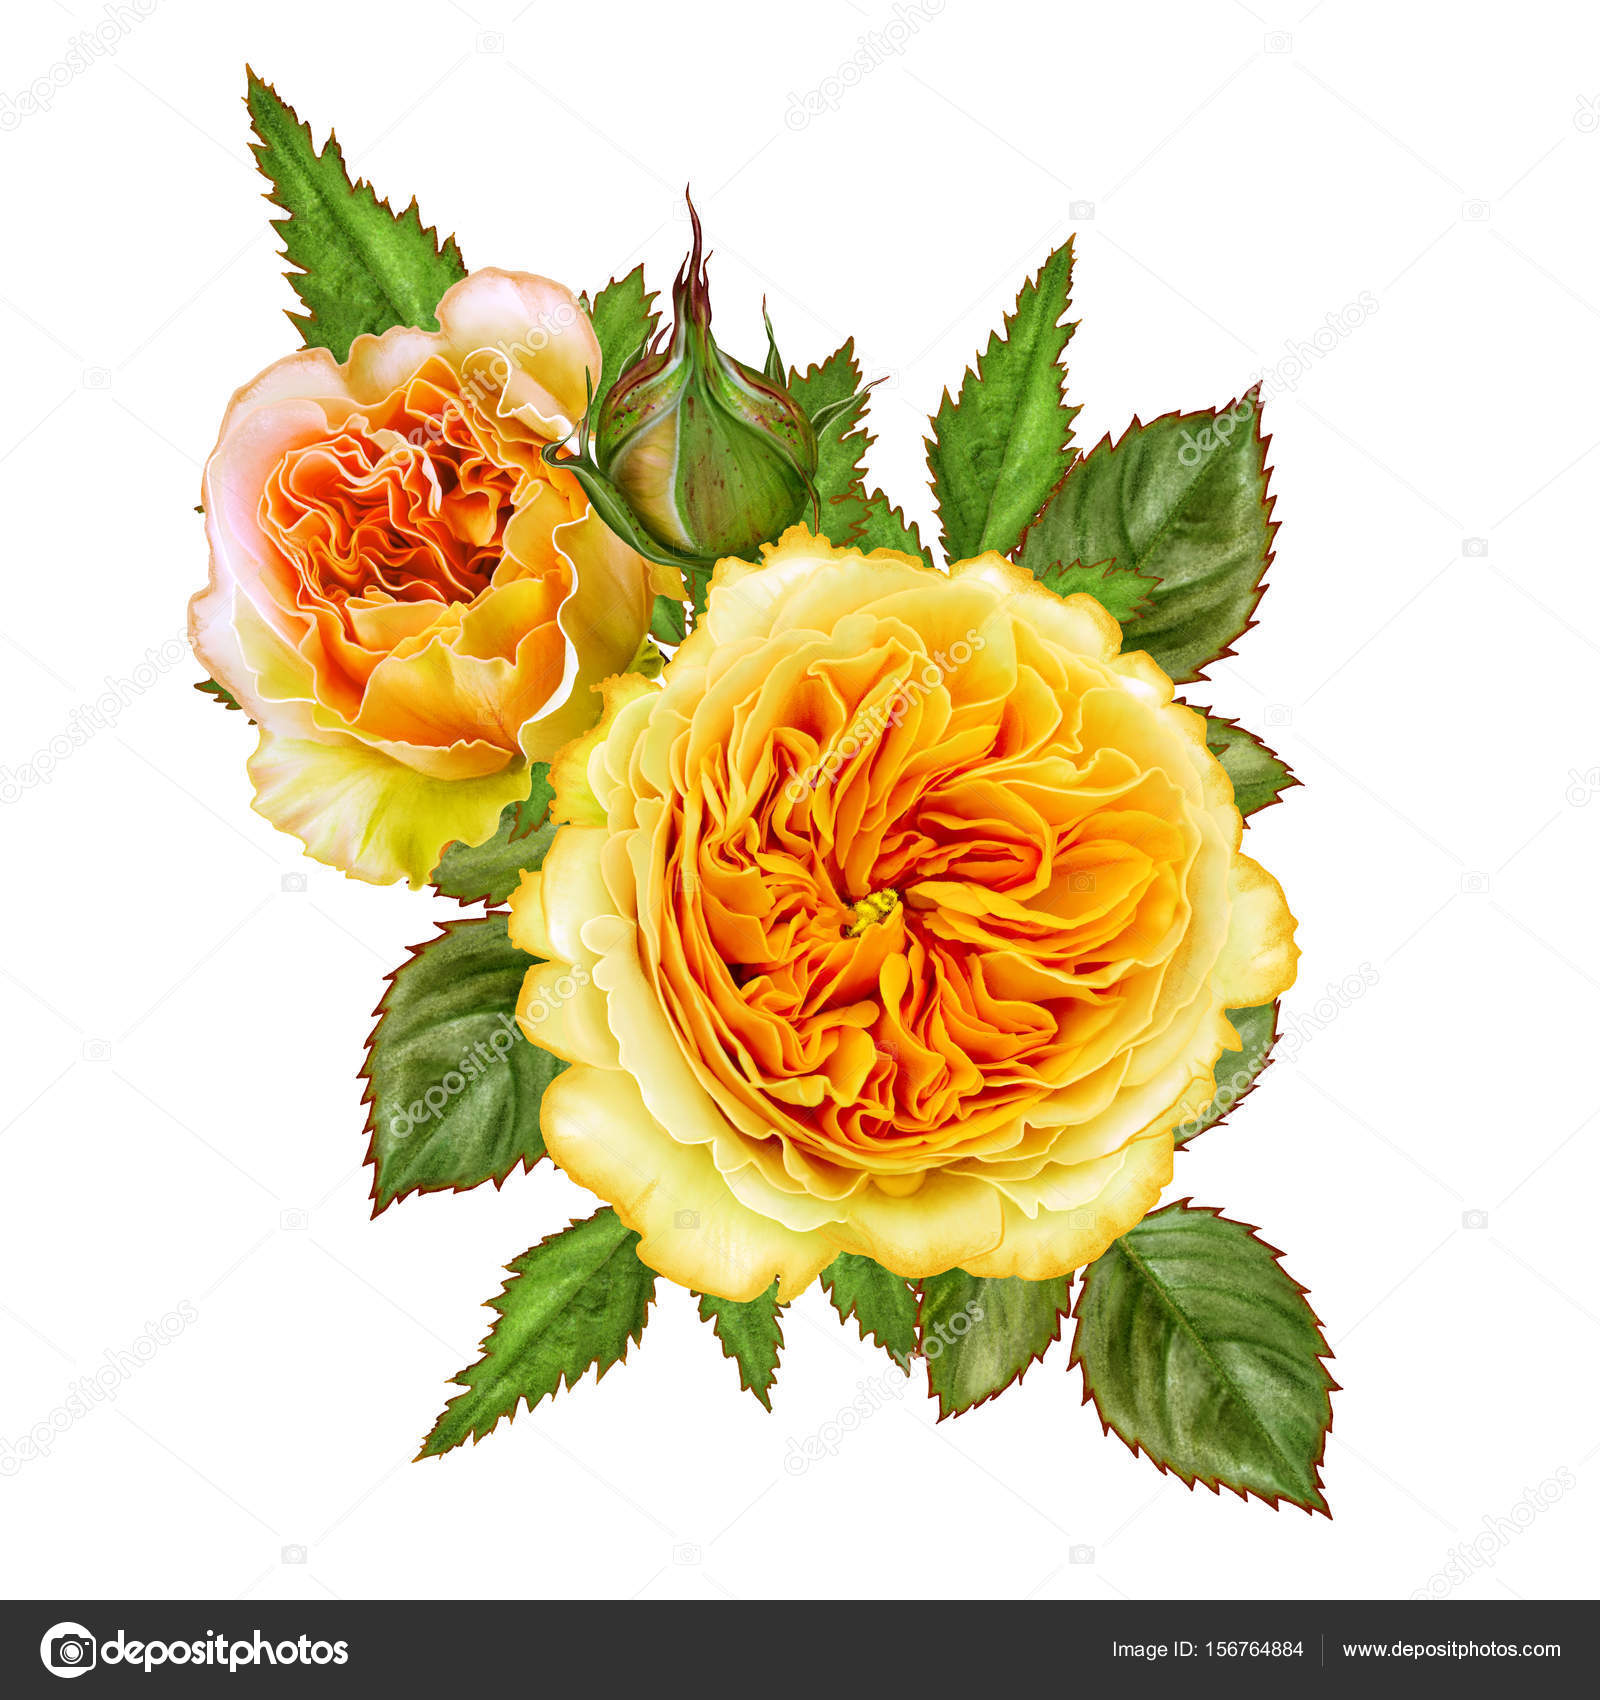 Flower Arrangement Of Delicate Orange And Yellow Roses Stock